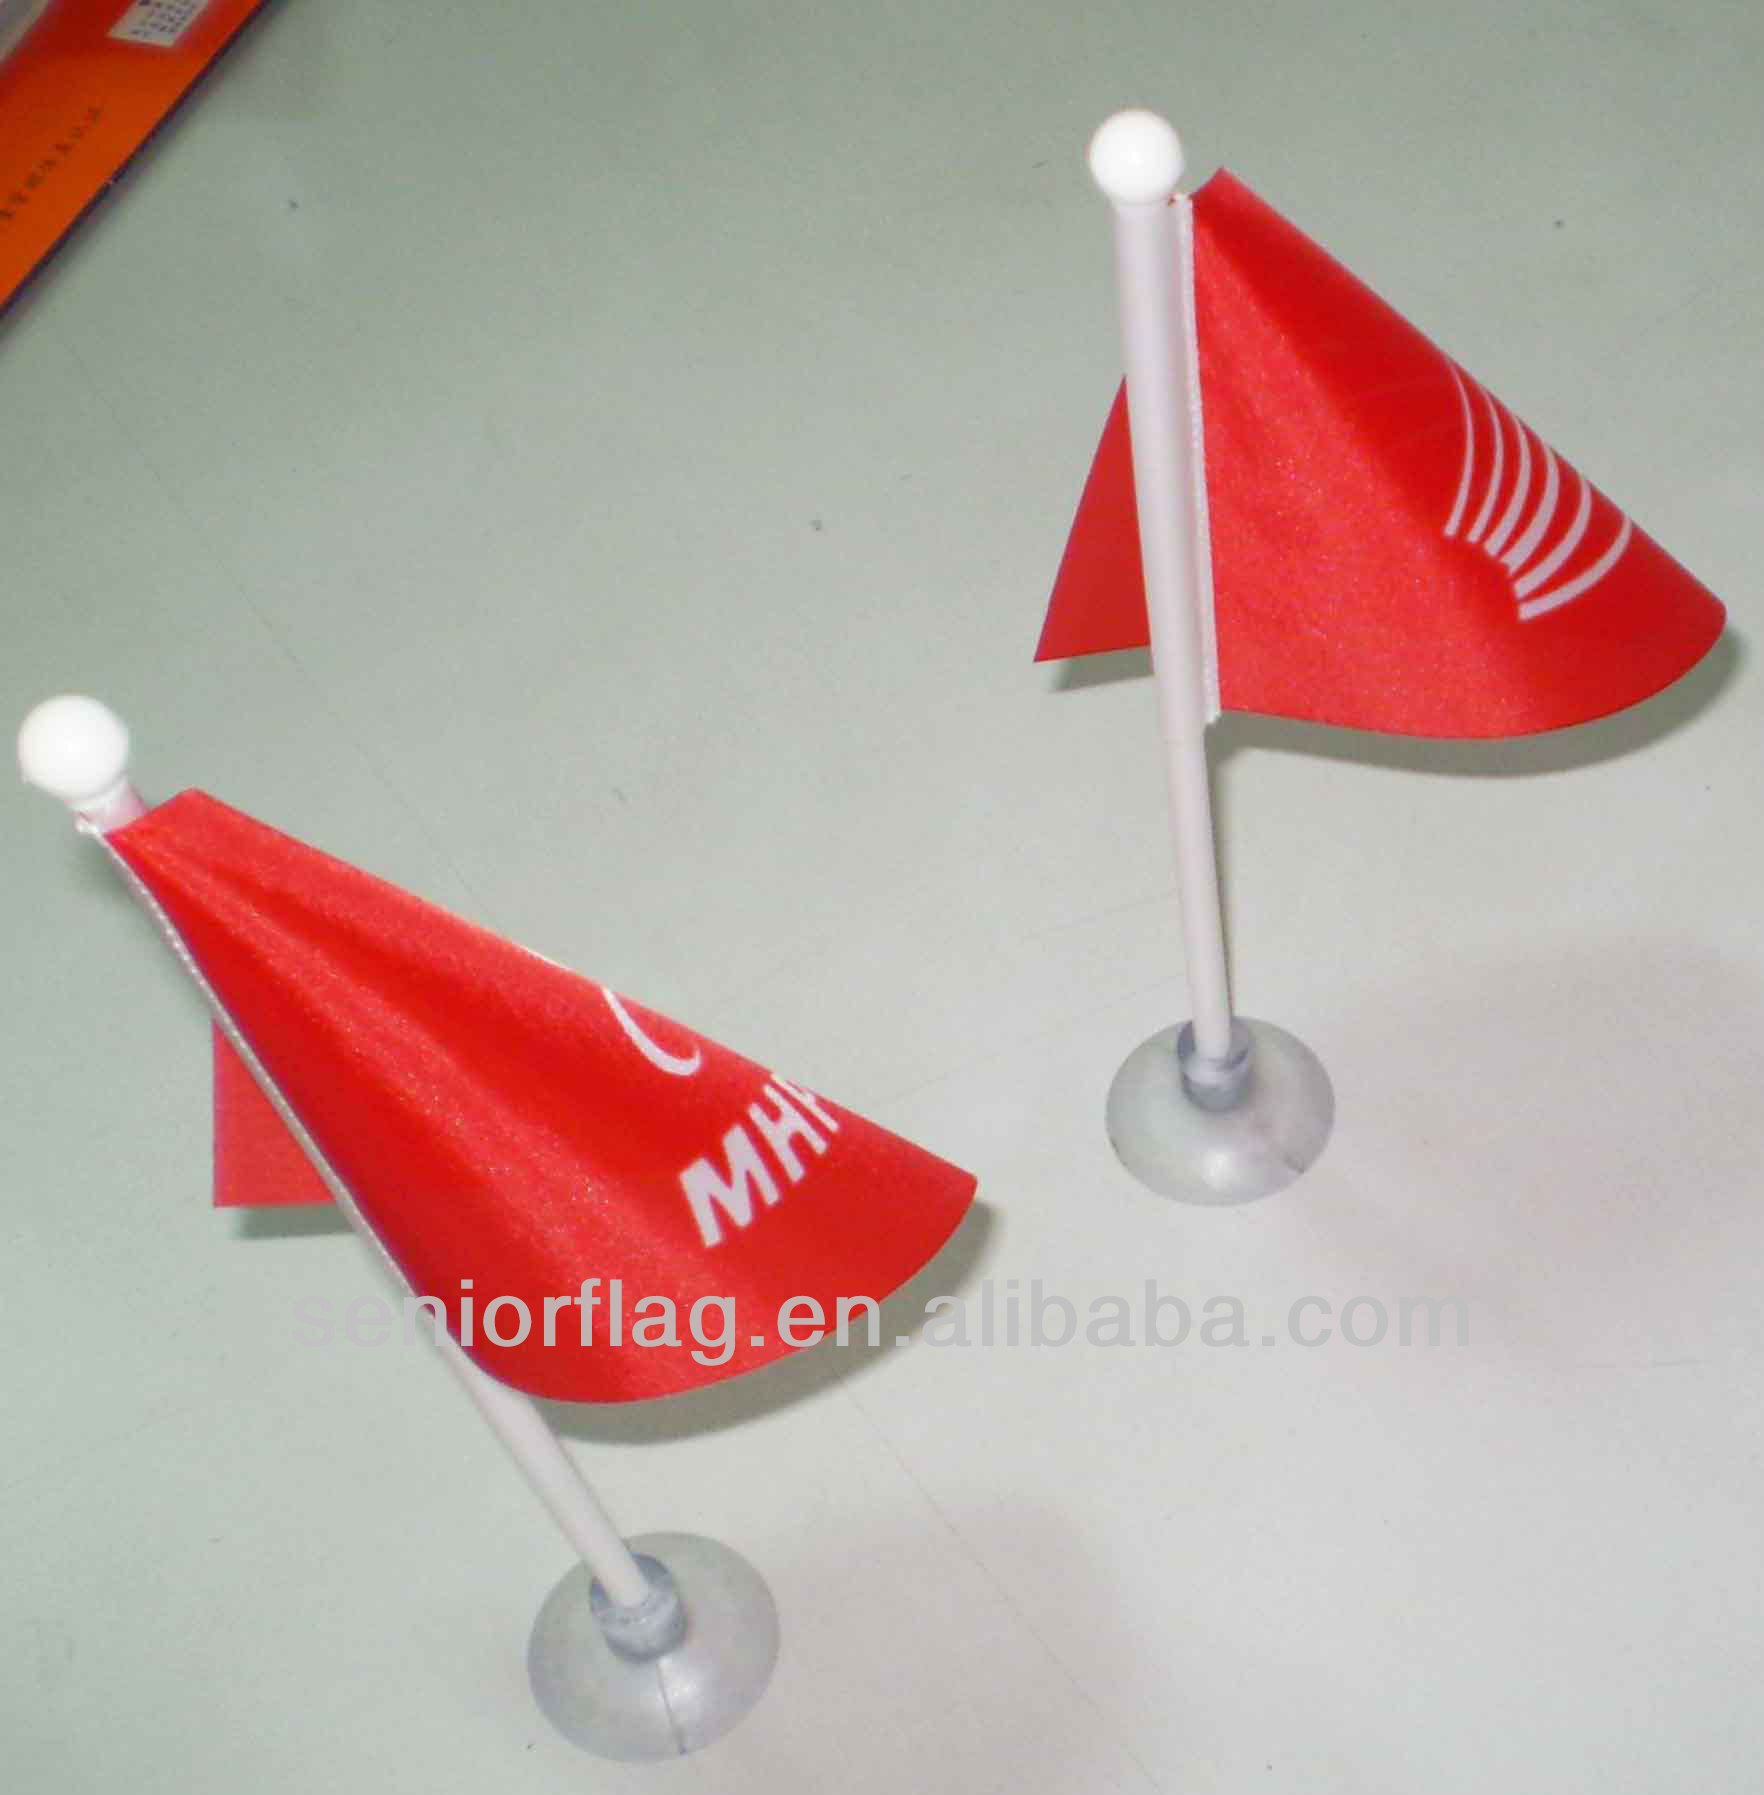 Mini suction cup flags car window flags